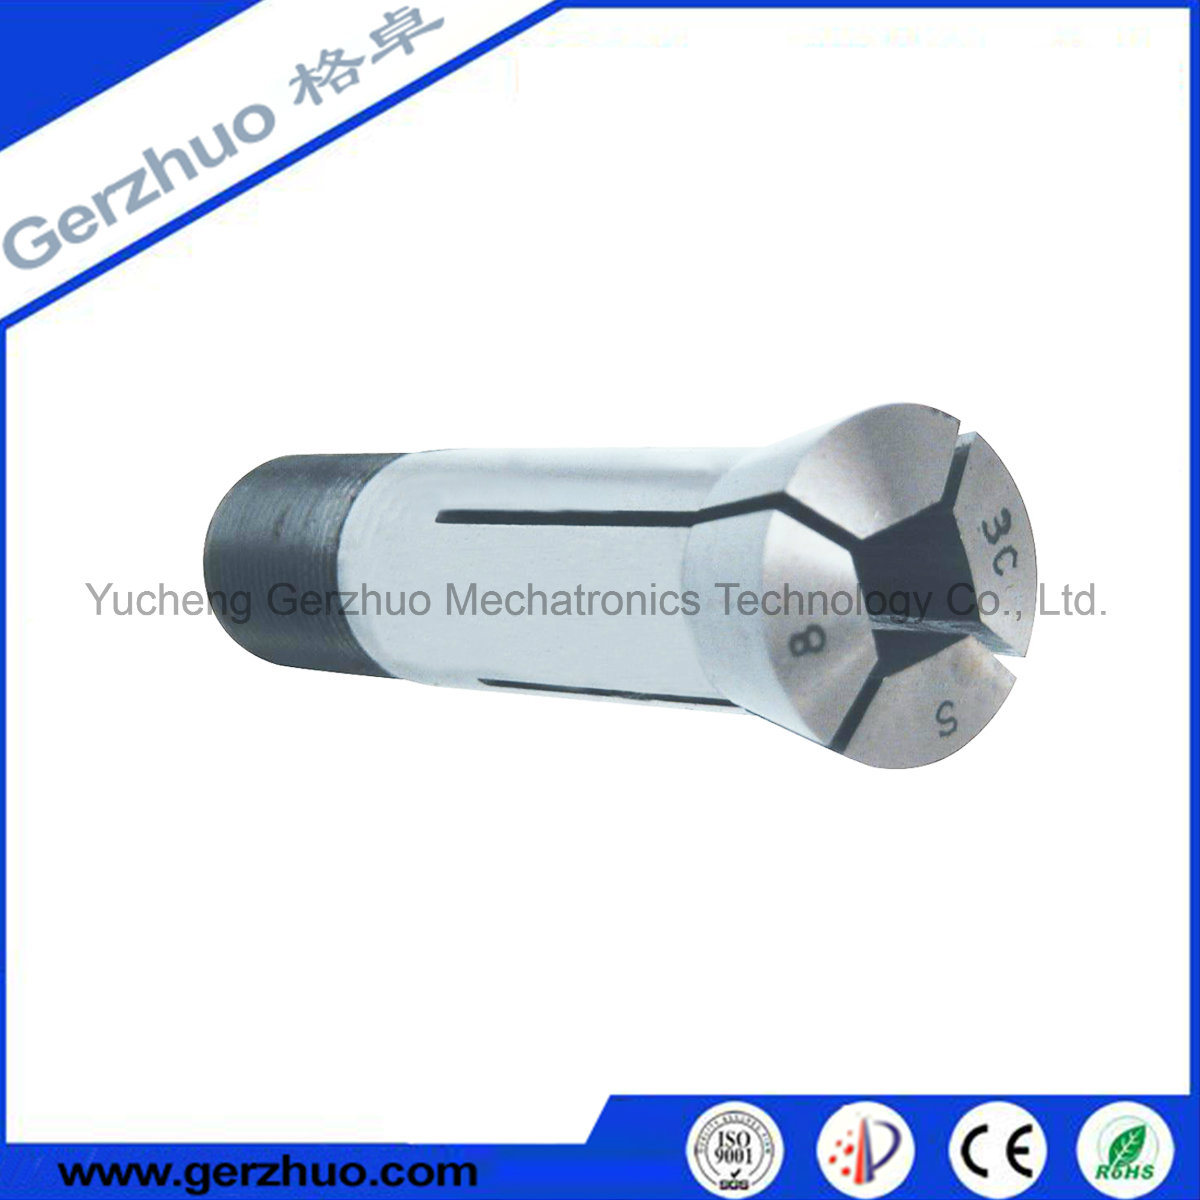 R8 Spring Collet for Lathe Machine